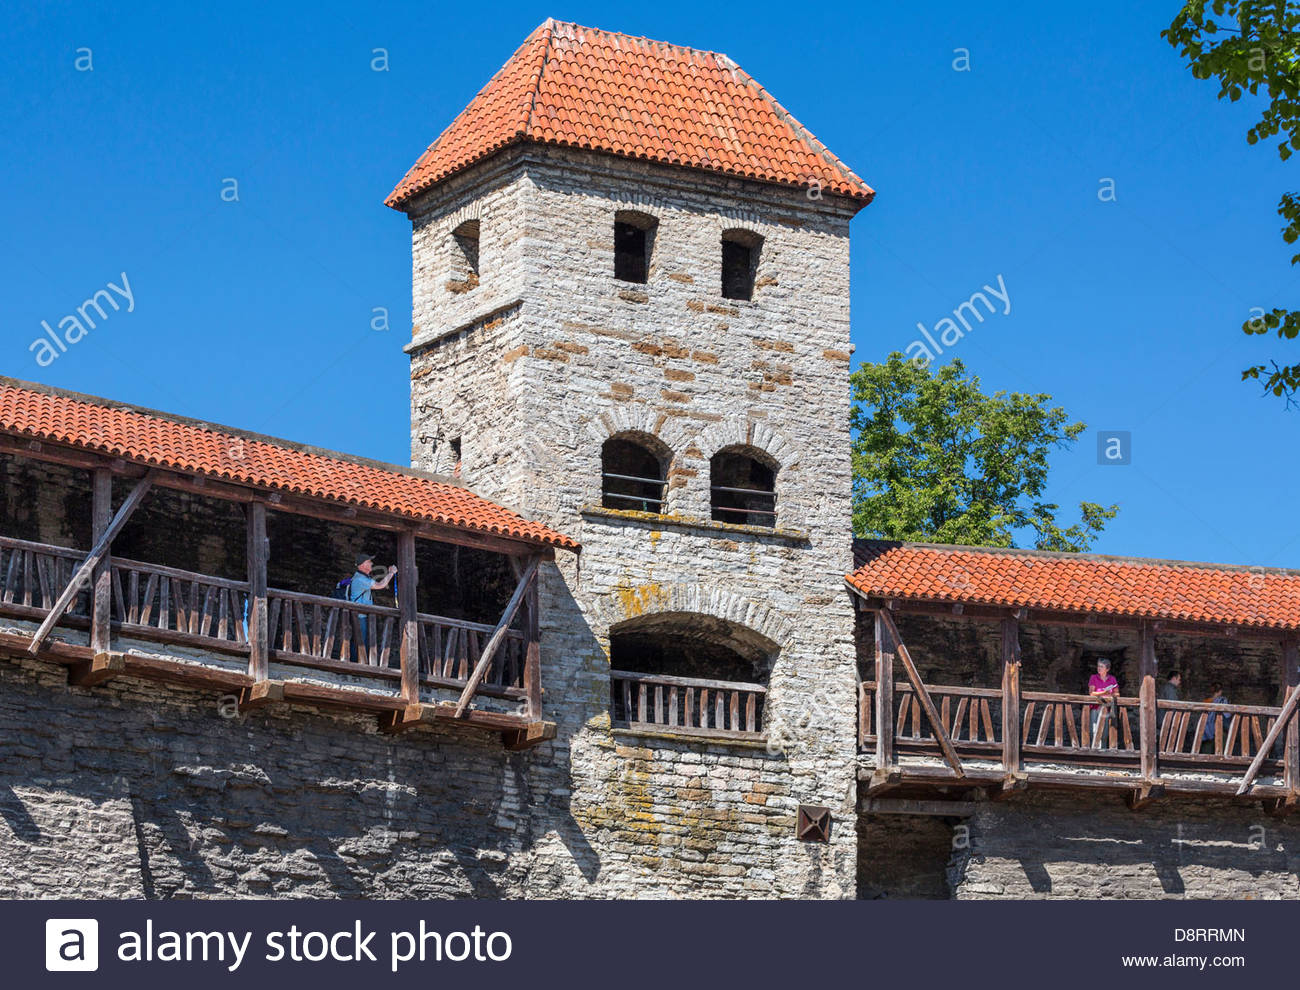 Tallinn medieval town city wall, watch tower - Stock Image